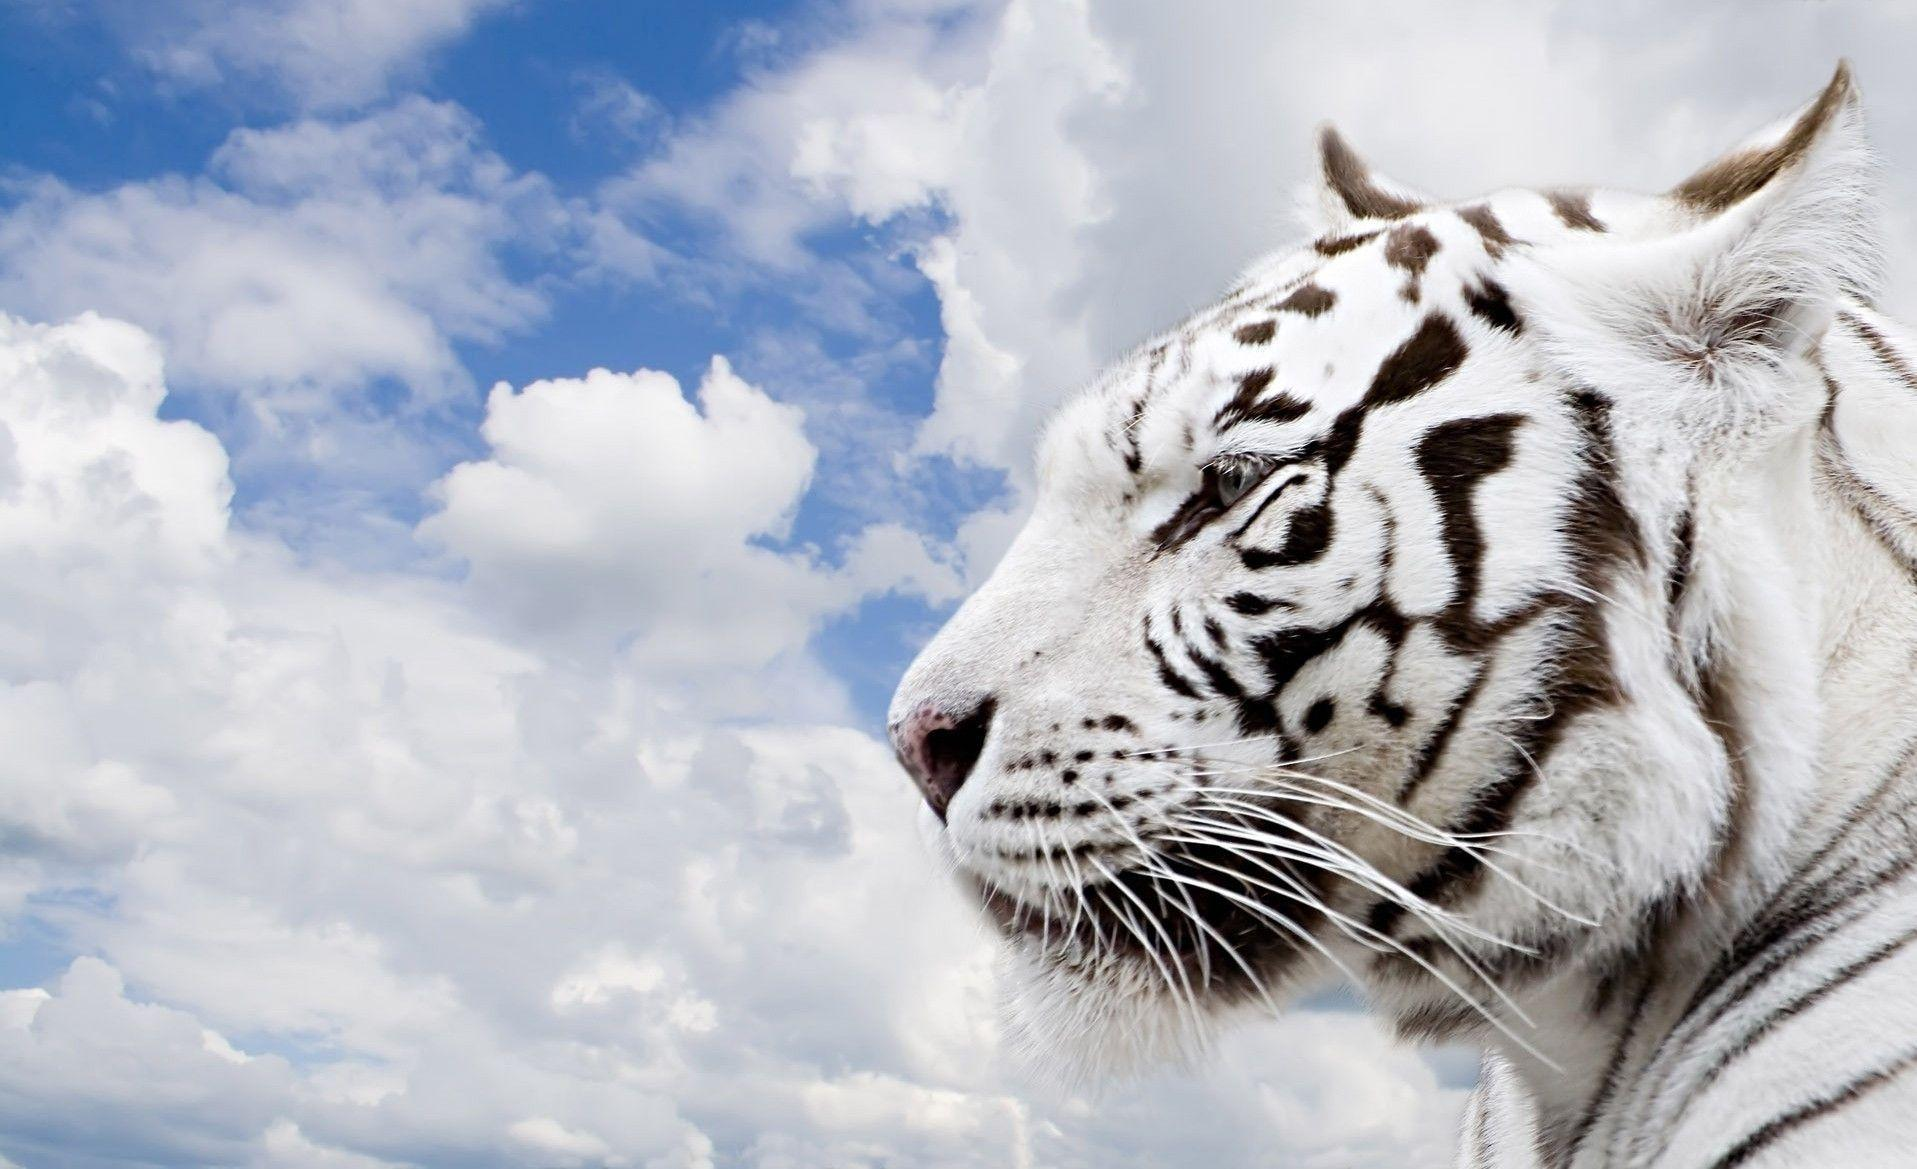 Popular Wallpaper Marvel White Tiger - 9OH5Qnc  Perfect Image Reference_695846.jpg